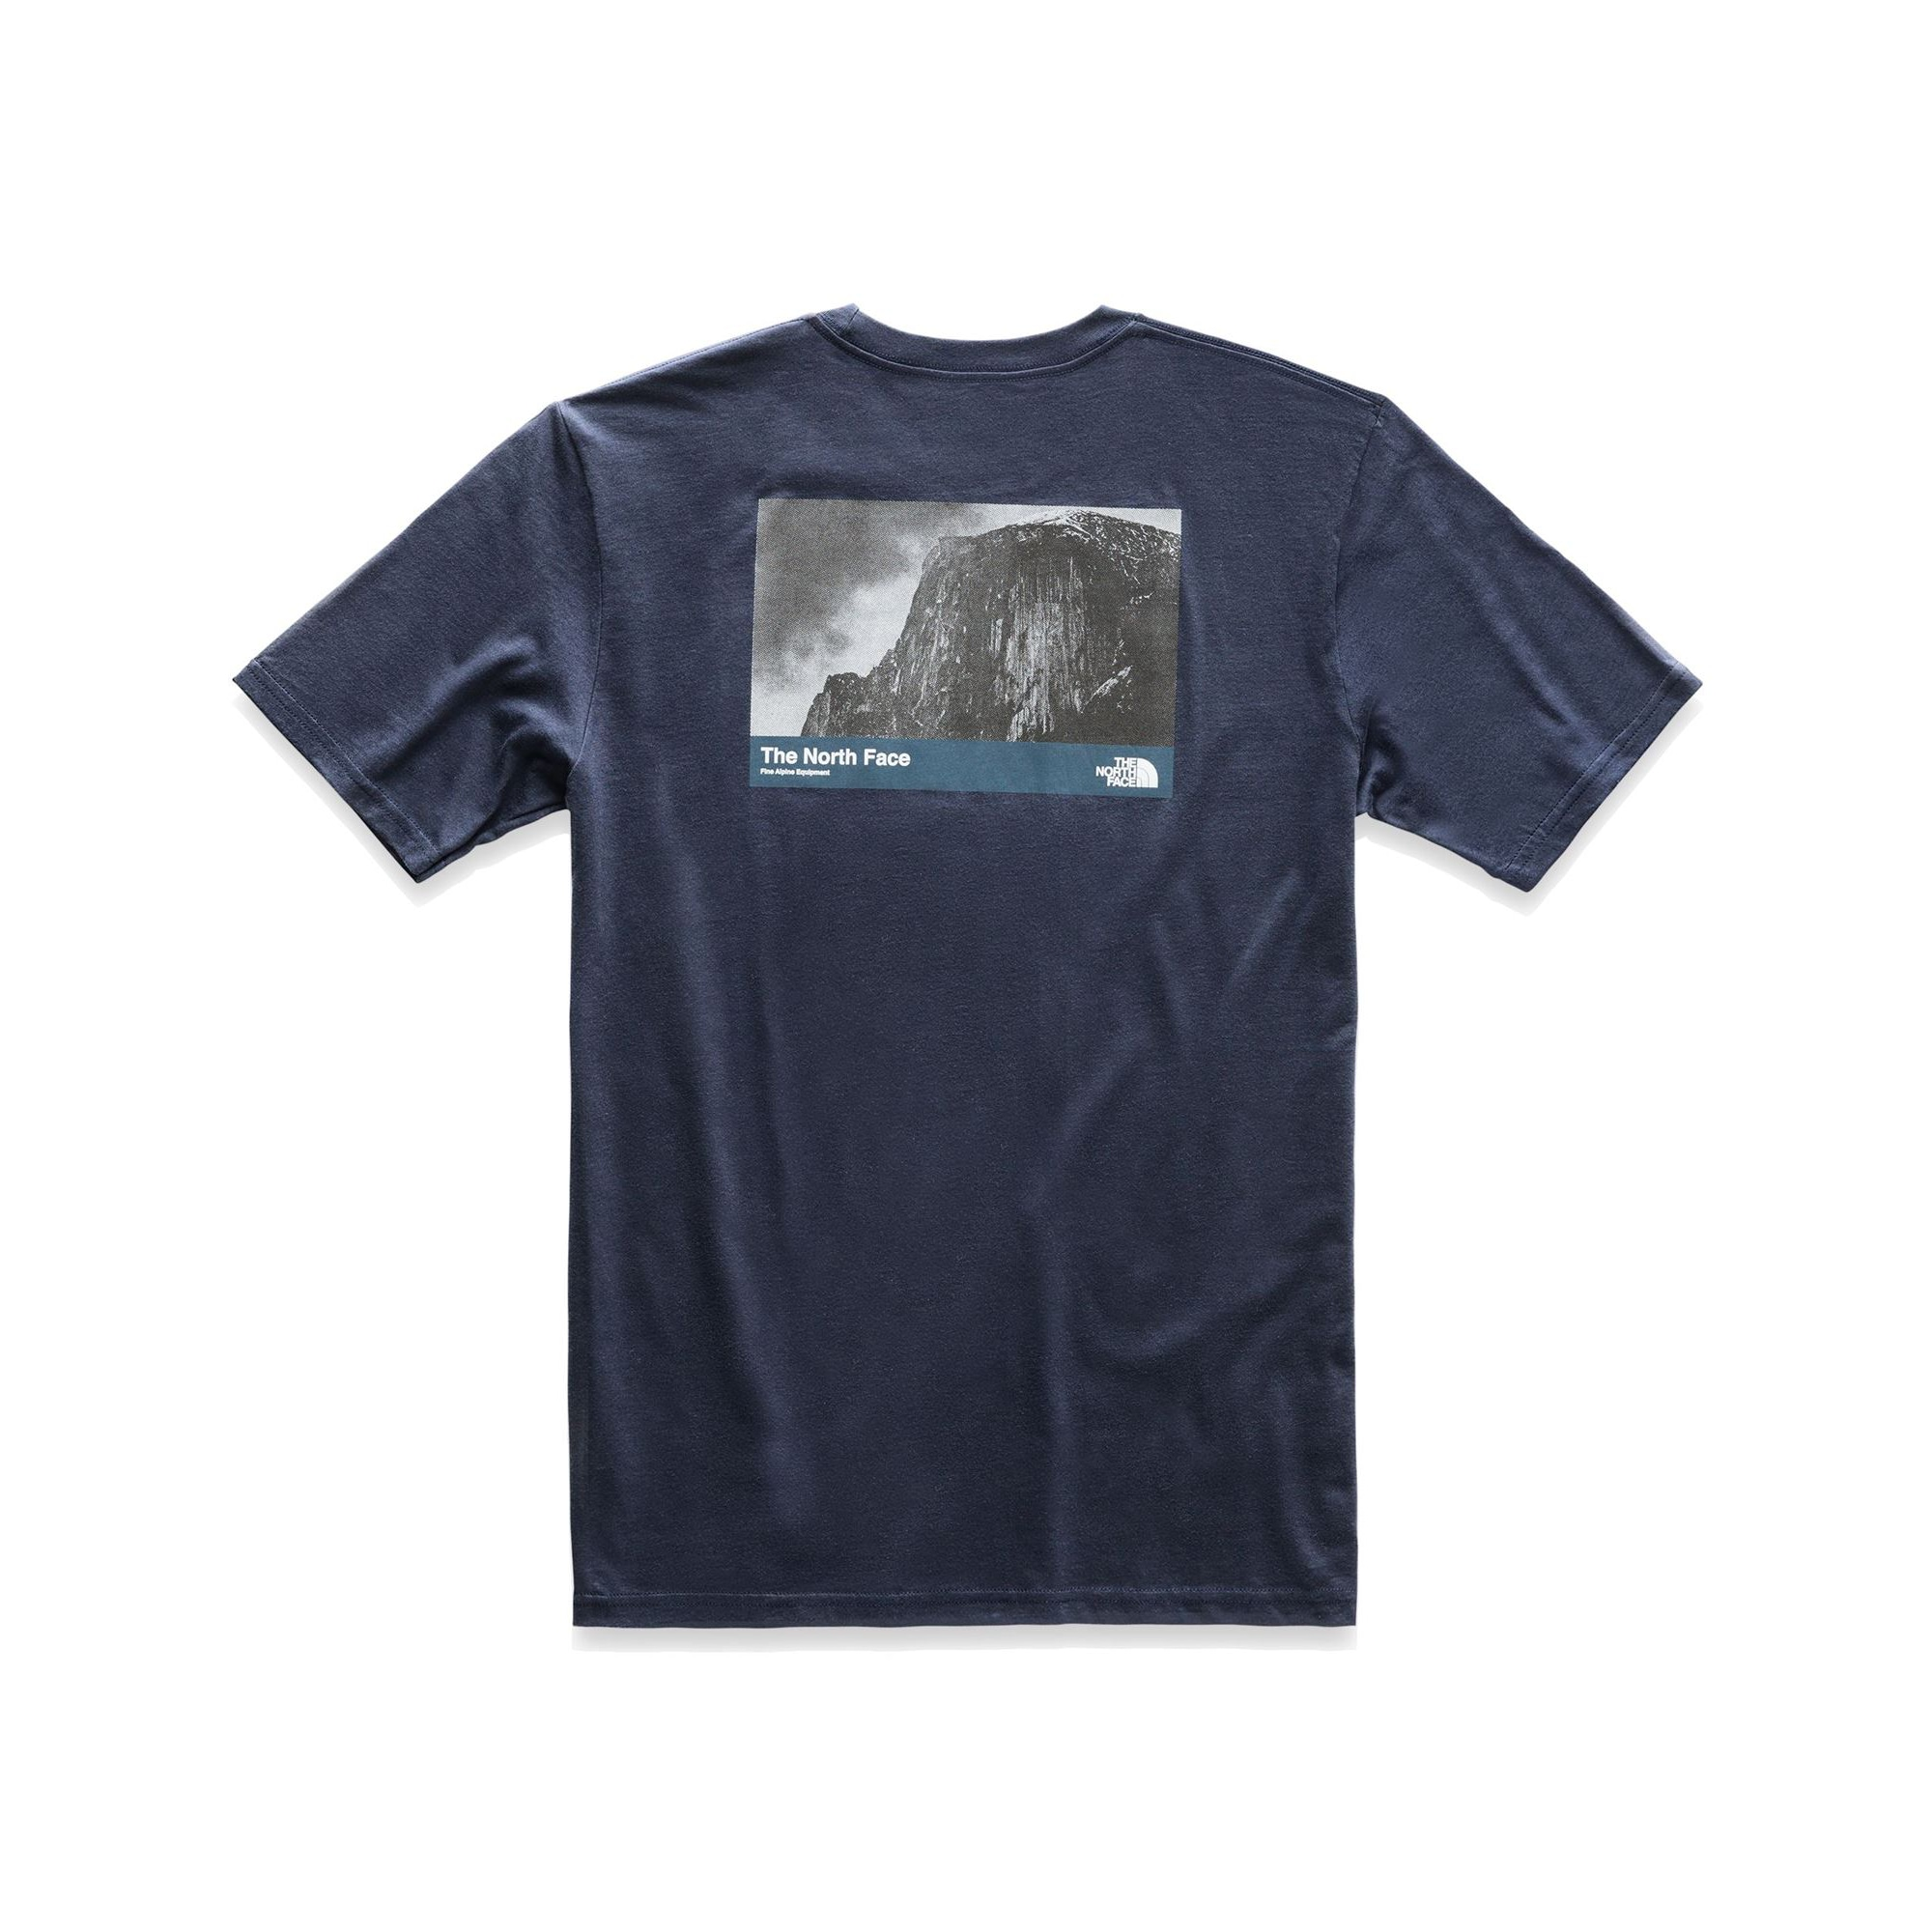 Stayframe Tee - Men's